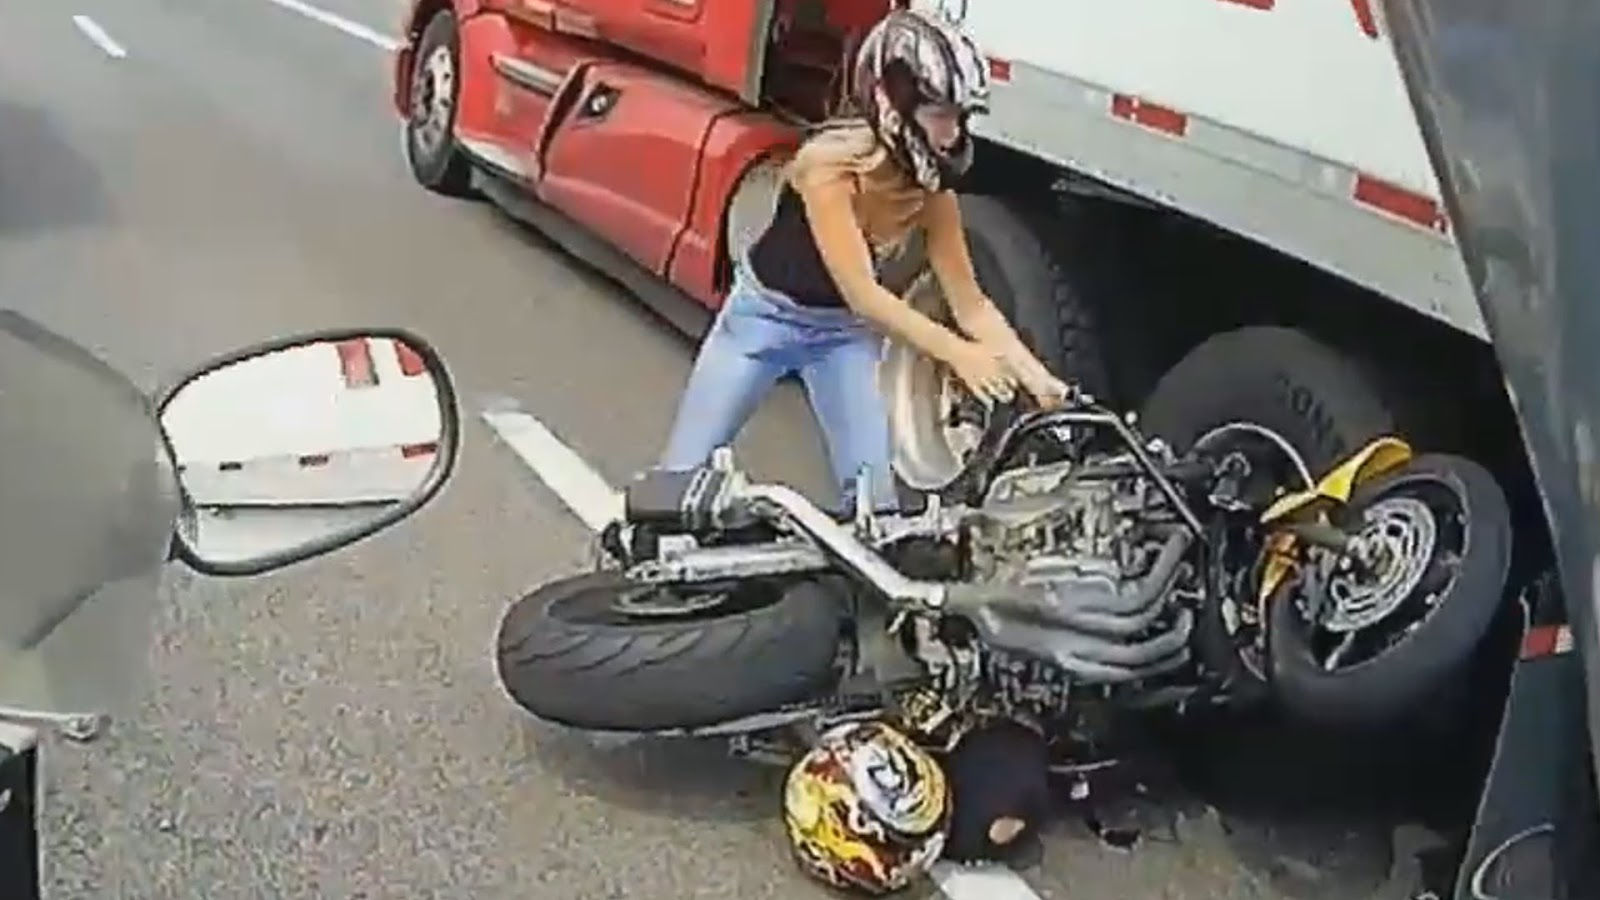 Survived from an accident while riding a motorcycle in my twenties.